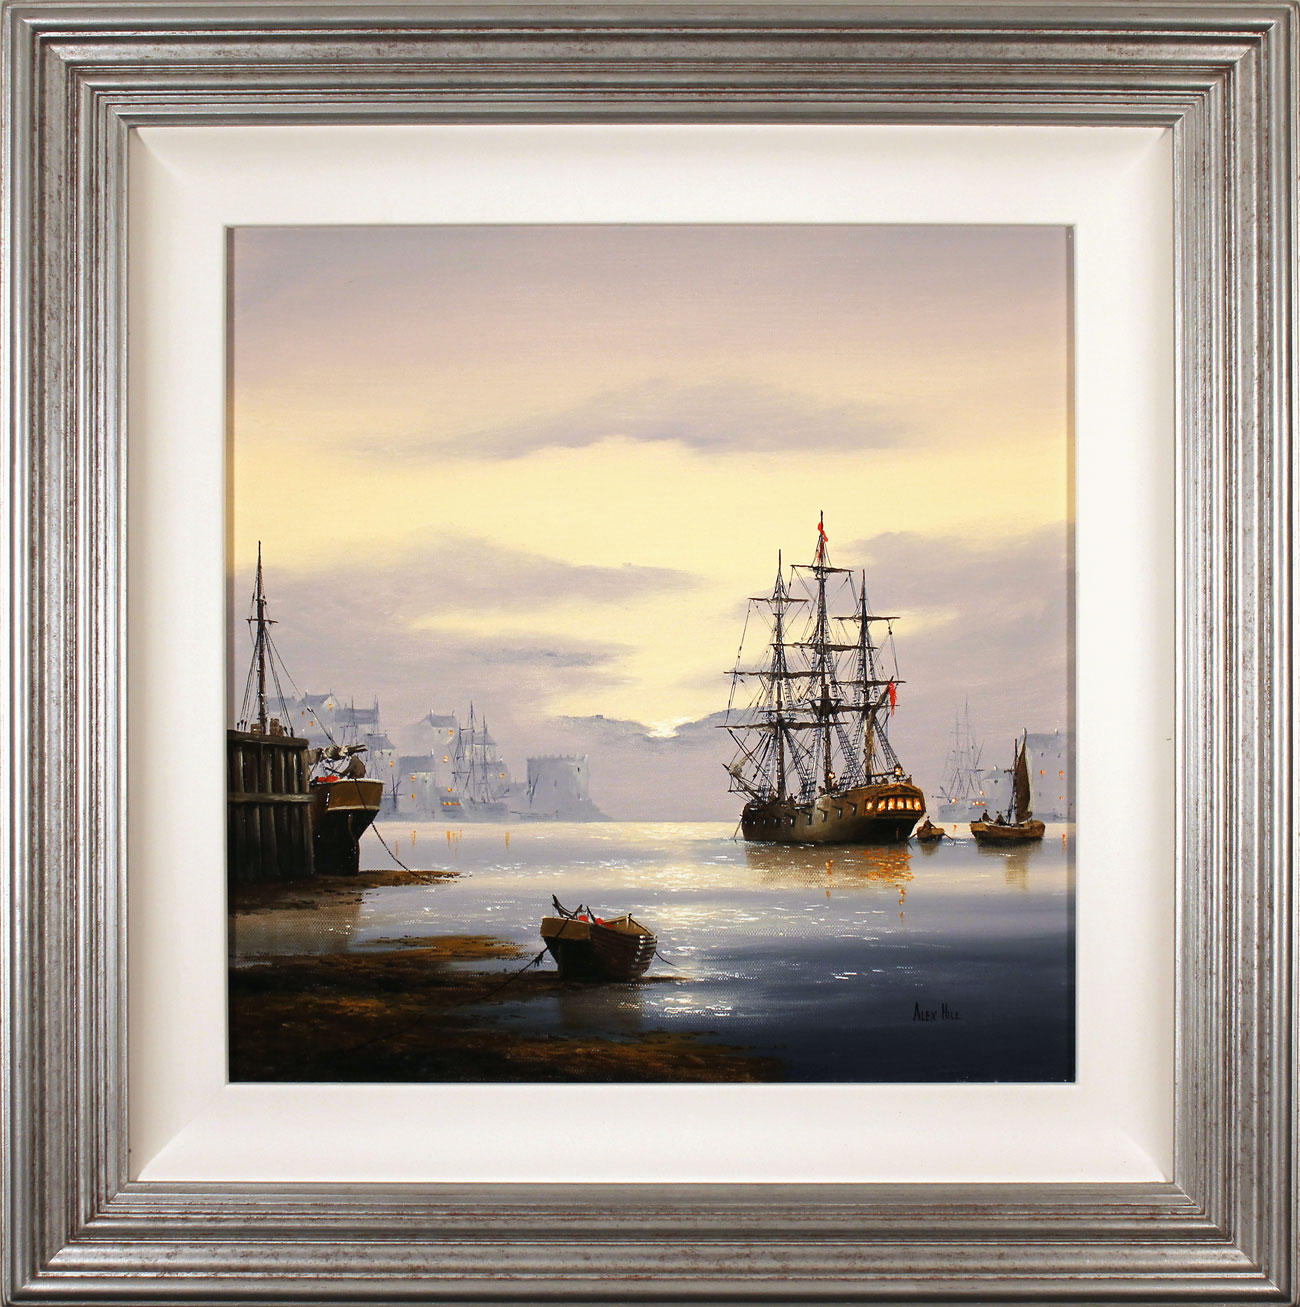 Alex Hill, Original oil painting on canvas, Sunrise Harbour, click to enlarge